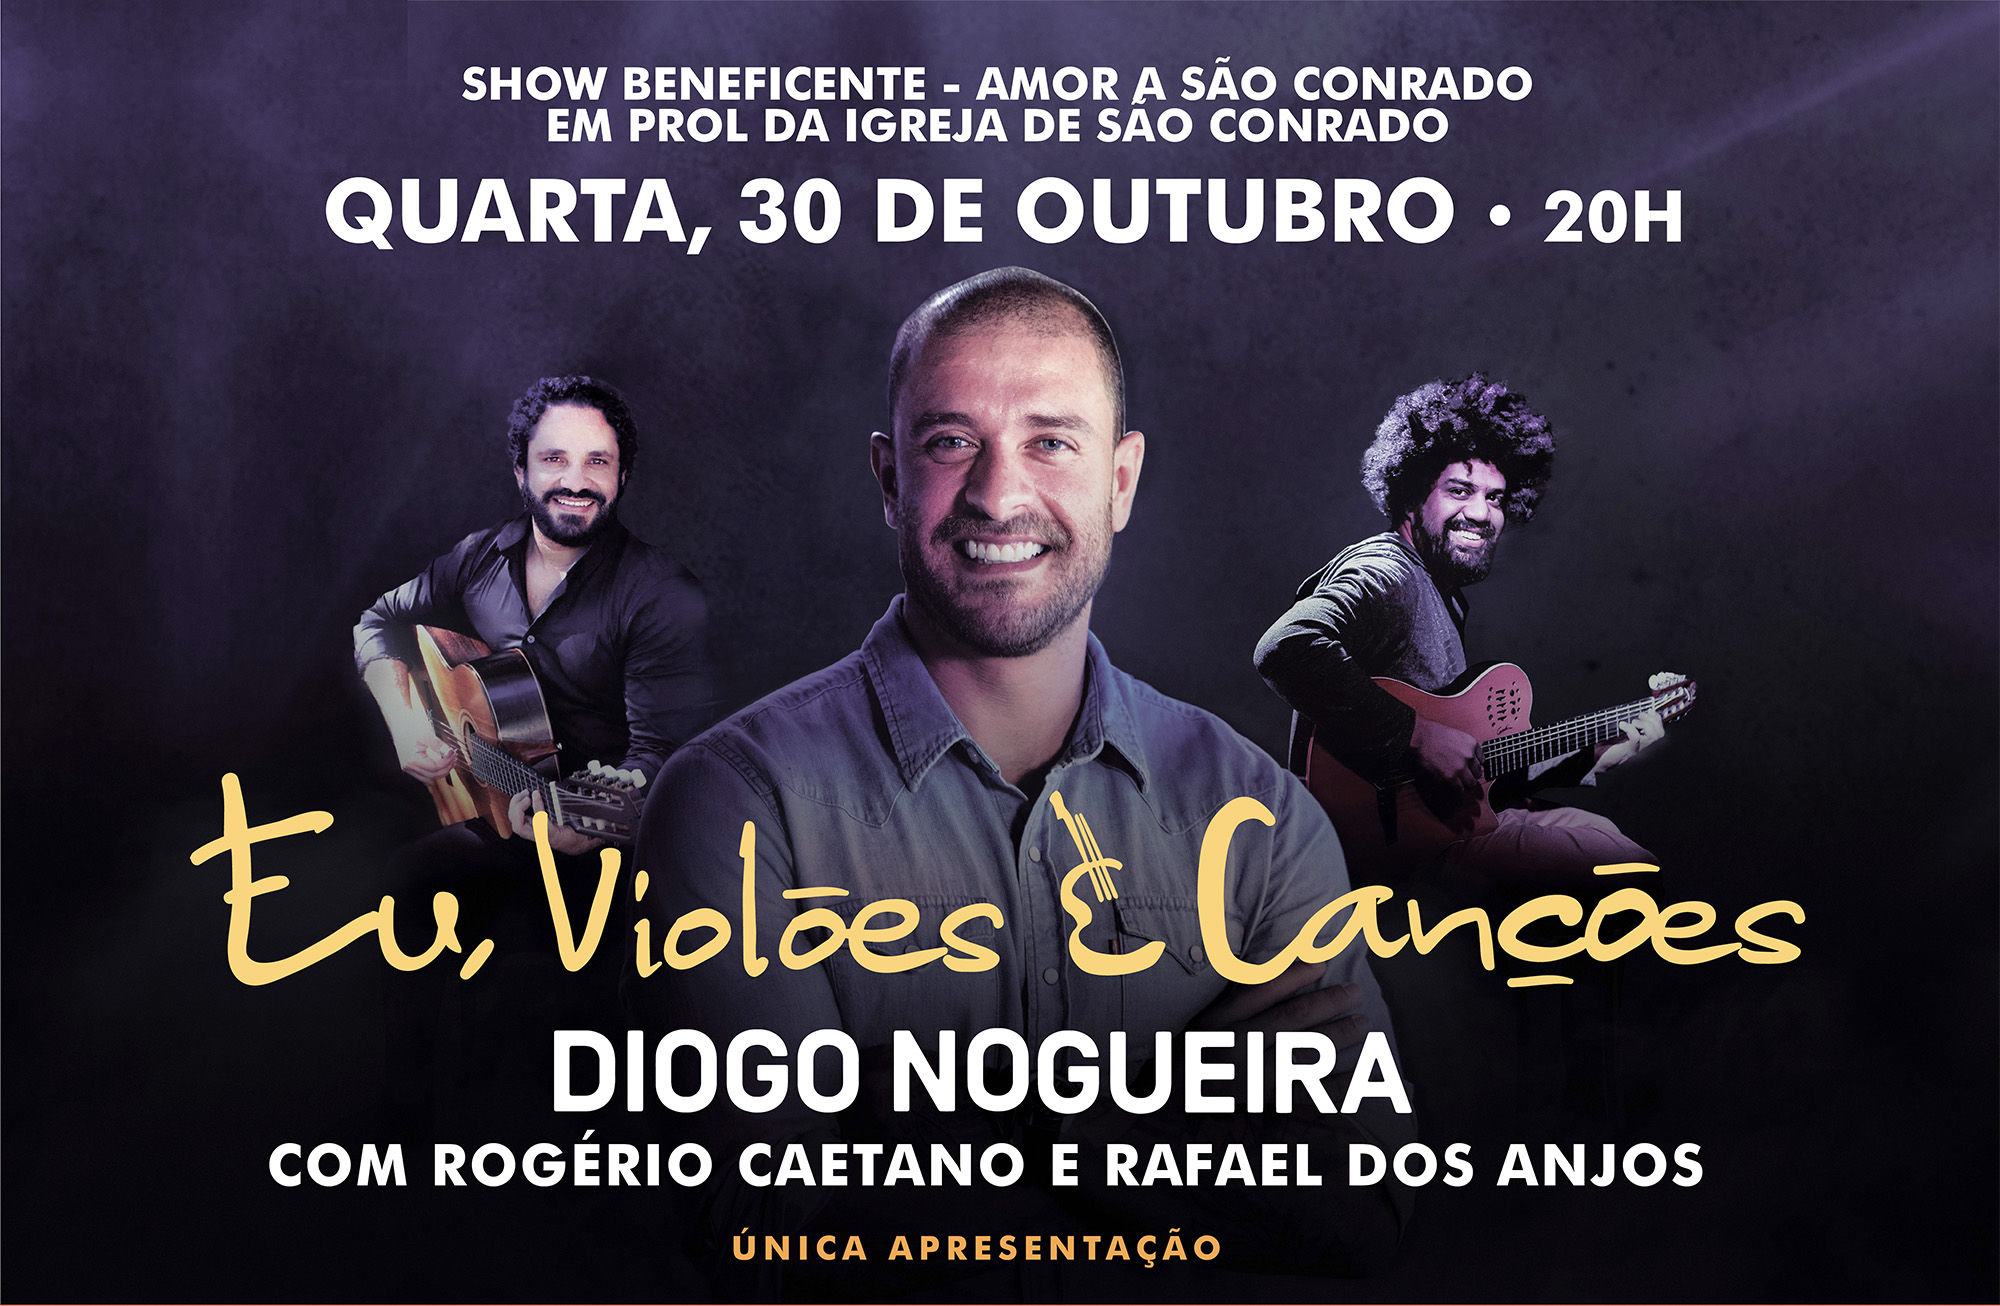 http://diogonogueira.com.br/wp-content/uploads/2019/10/DN_VIOLOES.jpg